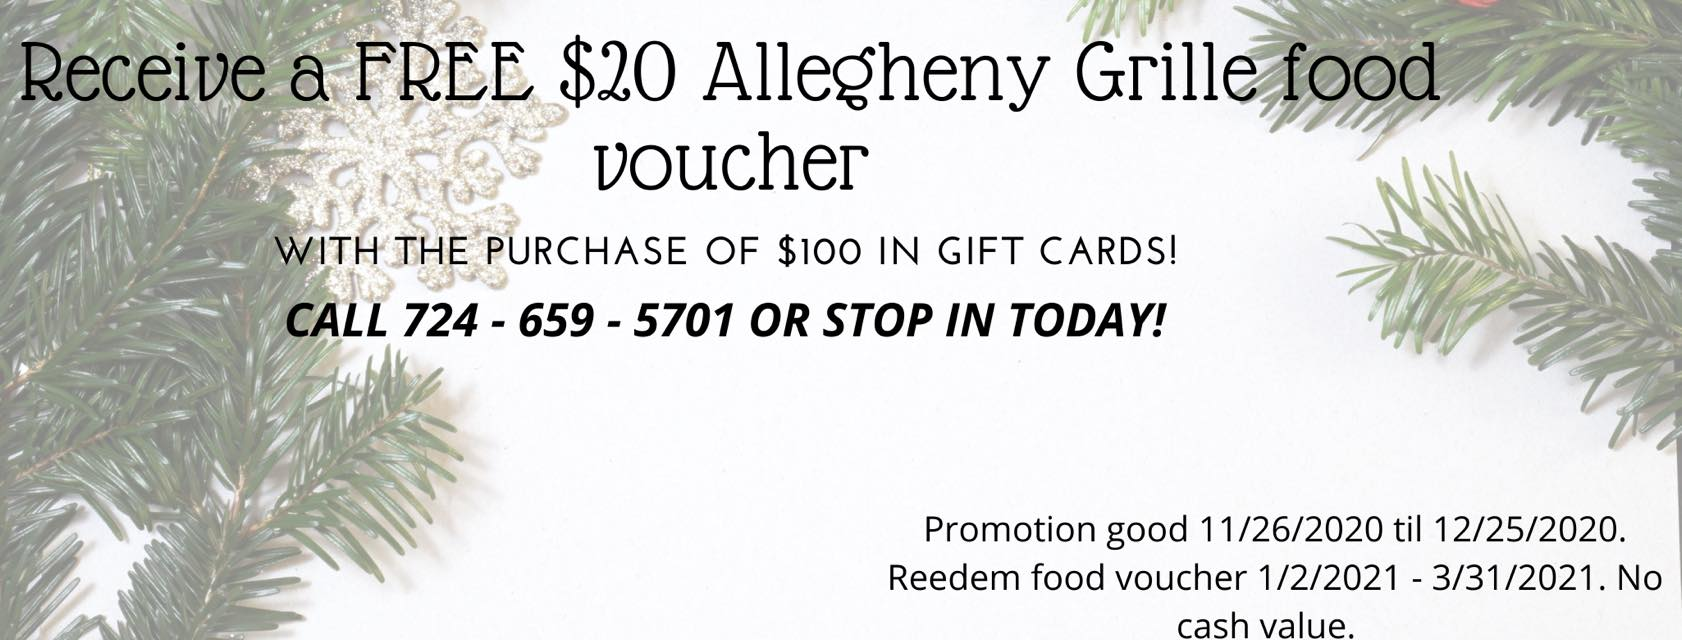 Allegheny Grill Gift card promo